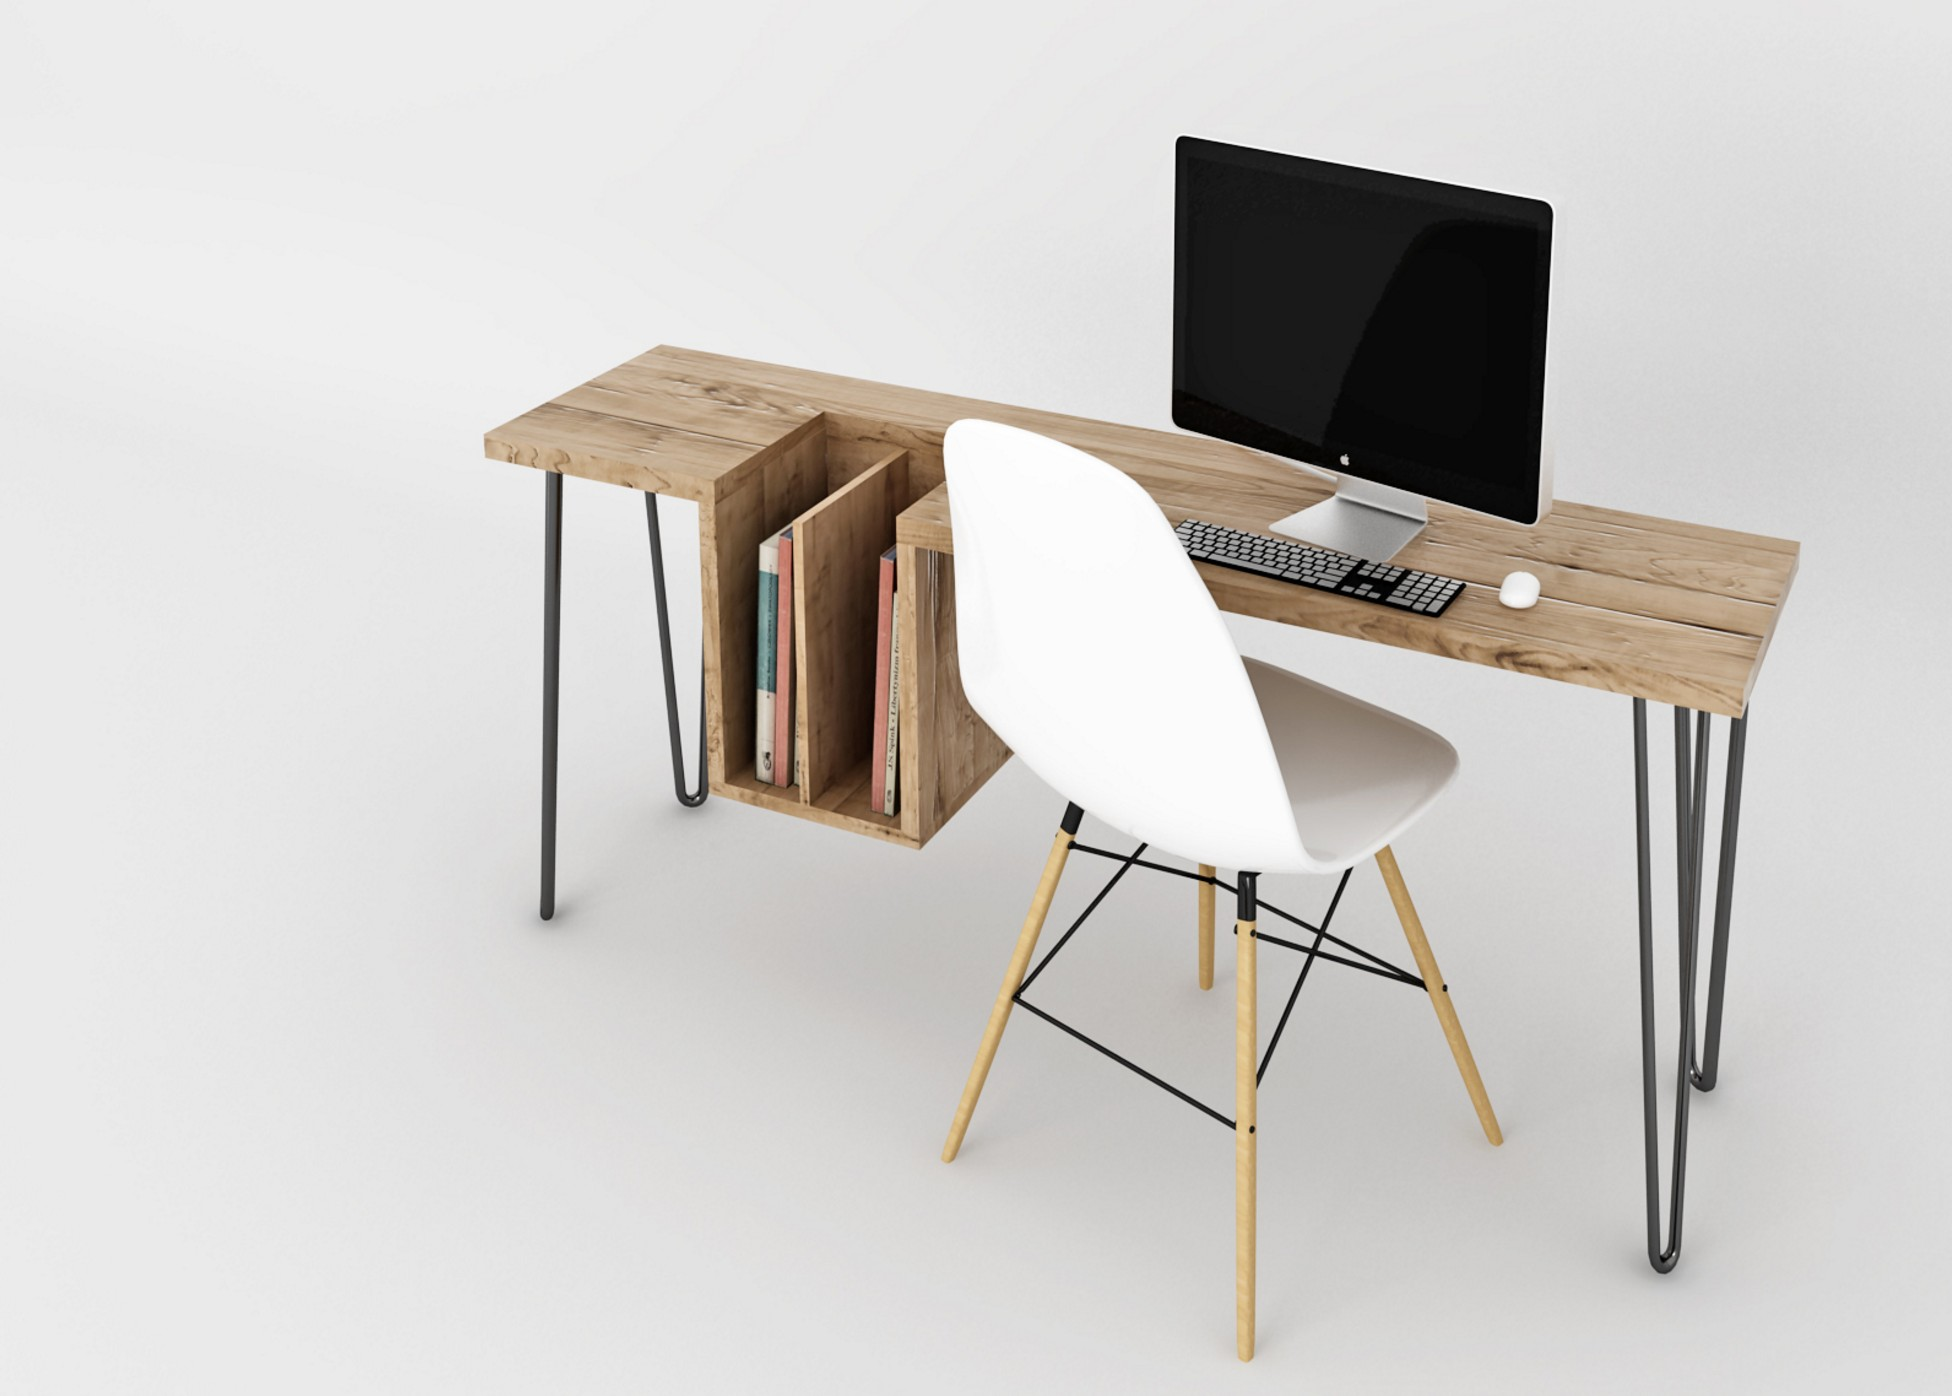 Super bureau-design-bois-5 - Blog Déco Design OS42